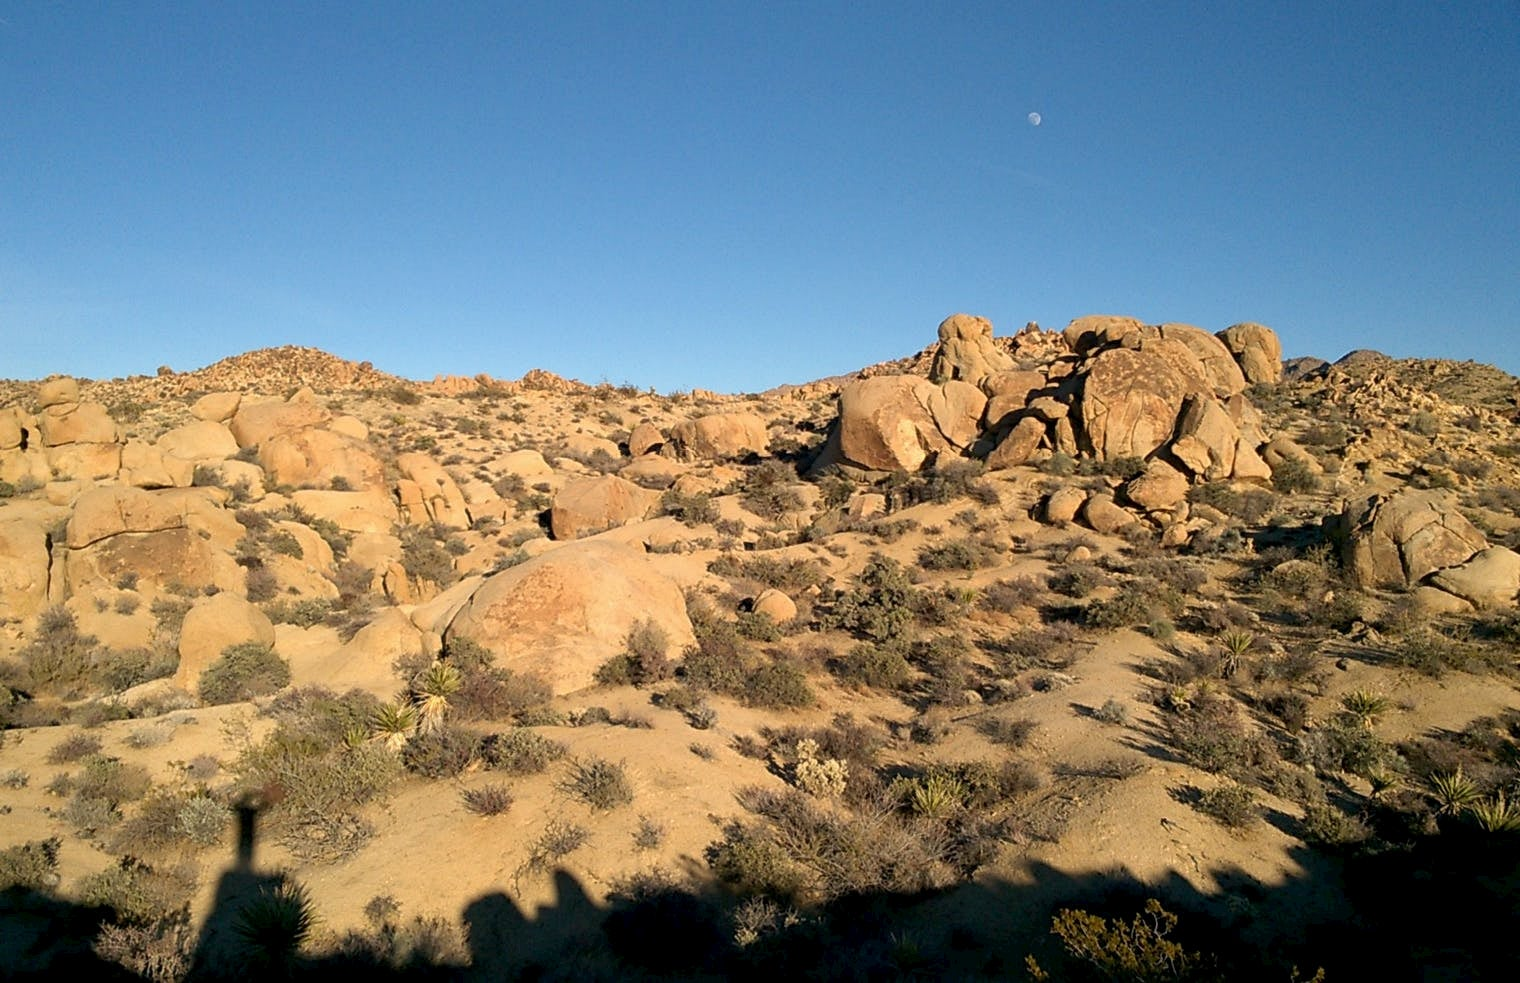 Moon in the clear blue sky over ht edesert with the shadow of a person and a landscape in the foreground.